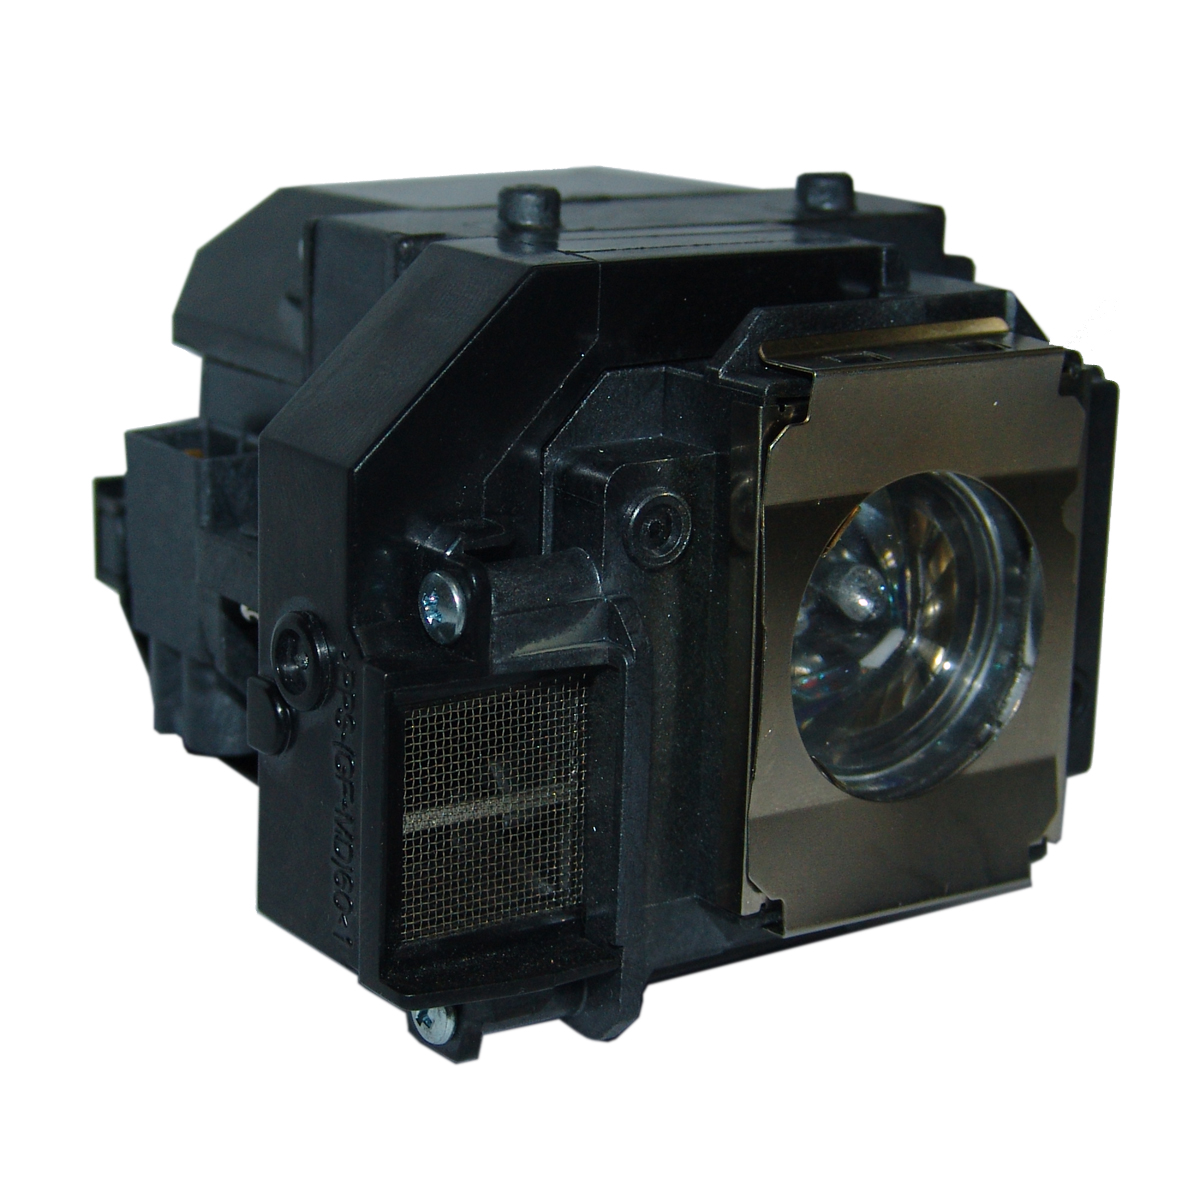 Original Osram Projector Lamp Replacement with Housing for Epson EB-X72 - image 2 of 5